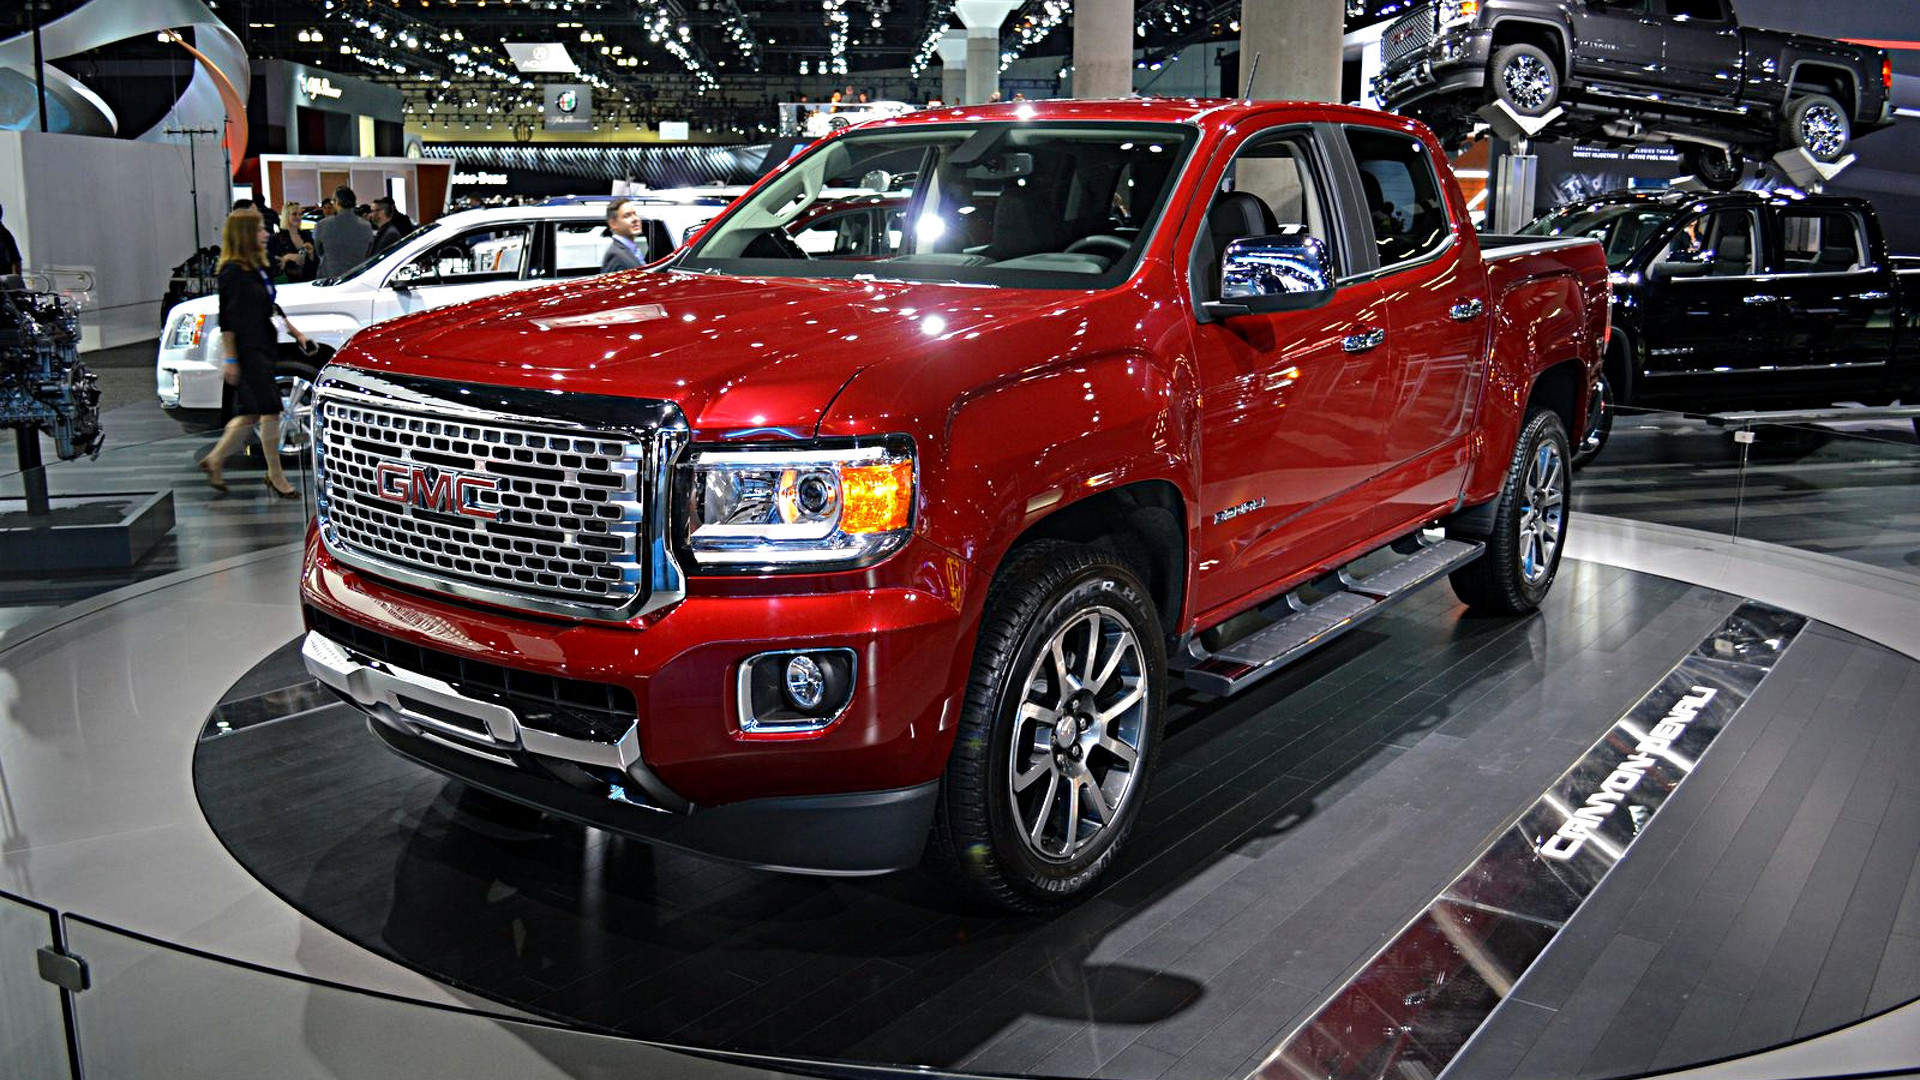 2017 gmc canyon denali unveiled as the first premium mid size pickup. Black Bedroom Furniture Sets. Home Design Ideas